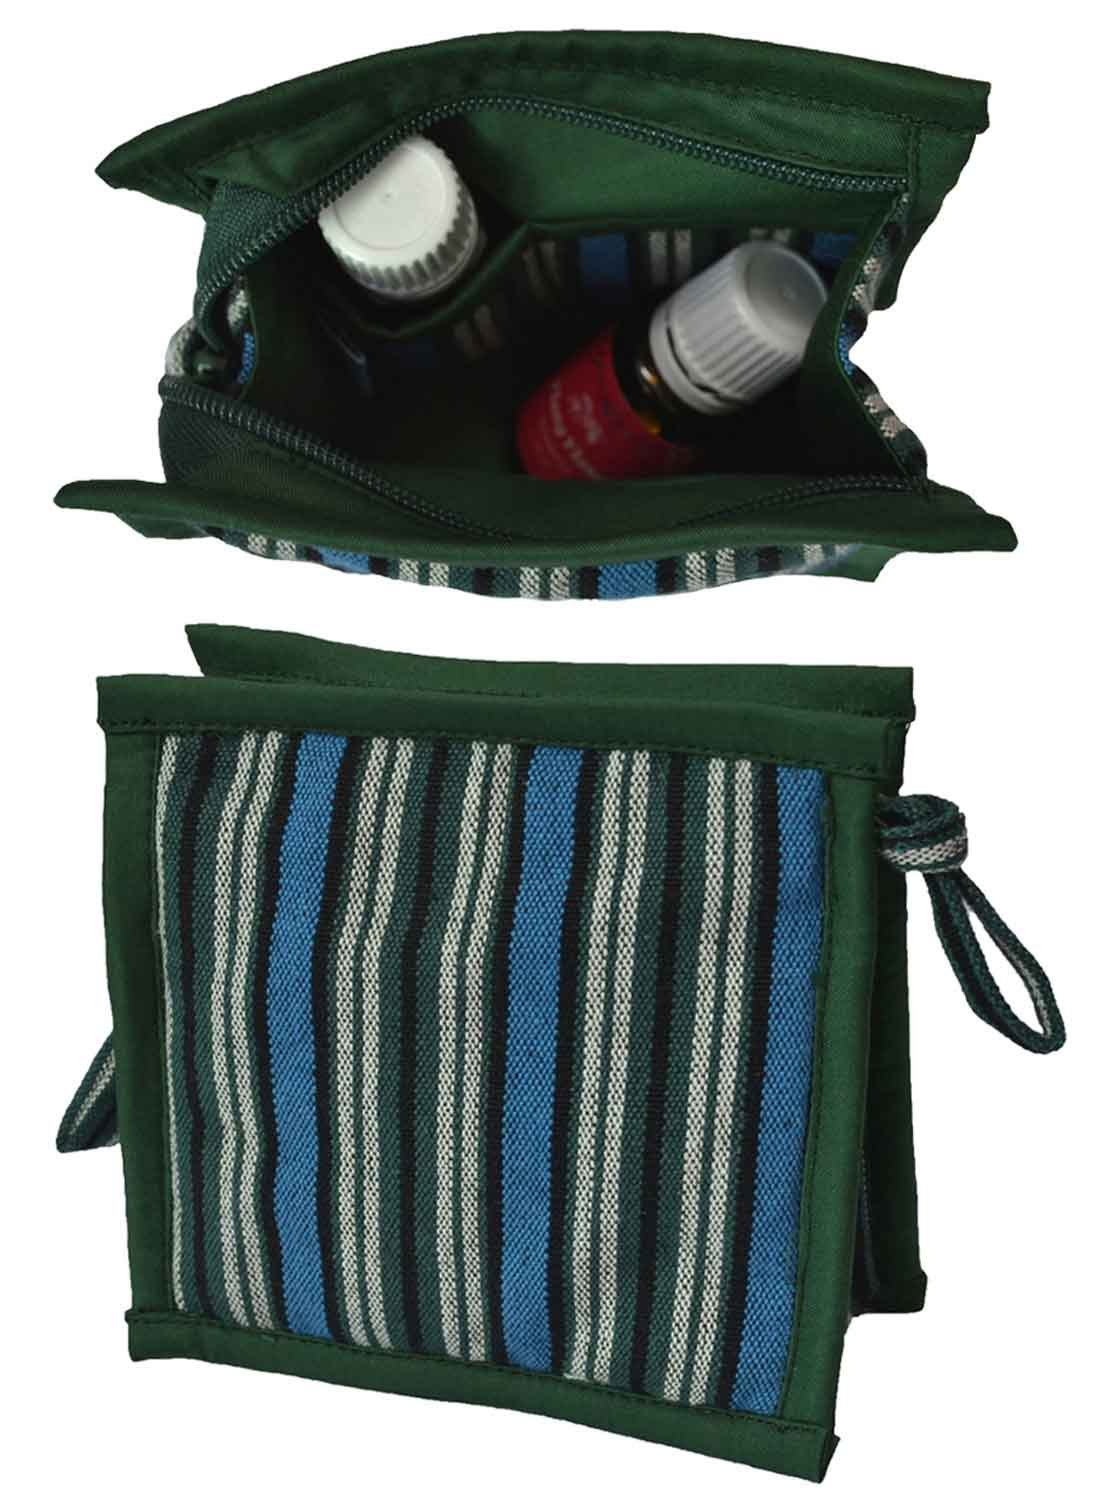 Small Essential Oils Storage Case | Protects 6 Oils: 5mL - 10mL & 15mL | Travel Bag for Purse | Holds doTERRA, Now & Young Living Oils | Compact Essential Oils Organizer for Women & Kids (Blue-Green)